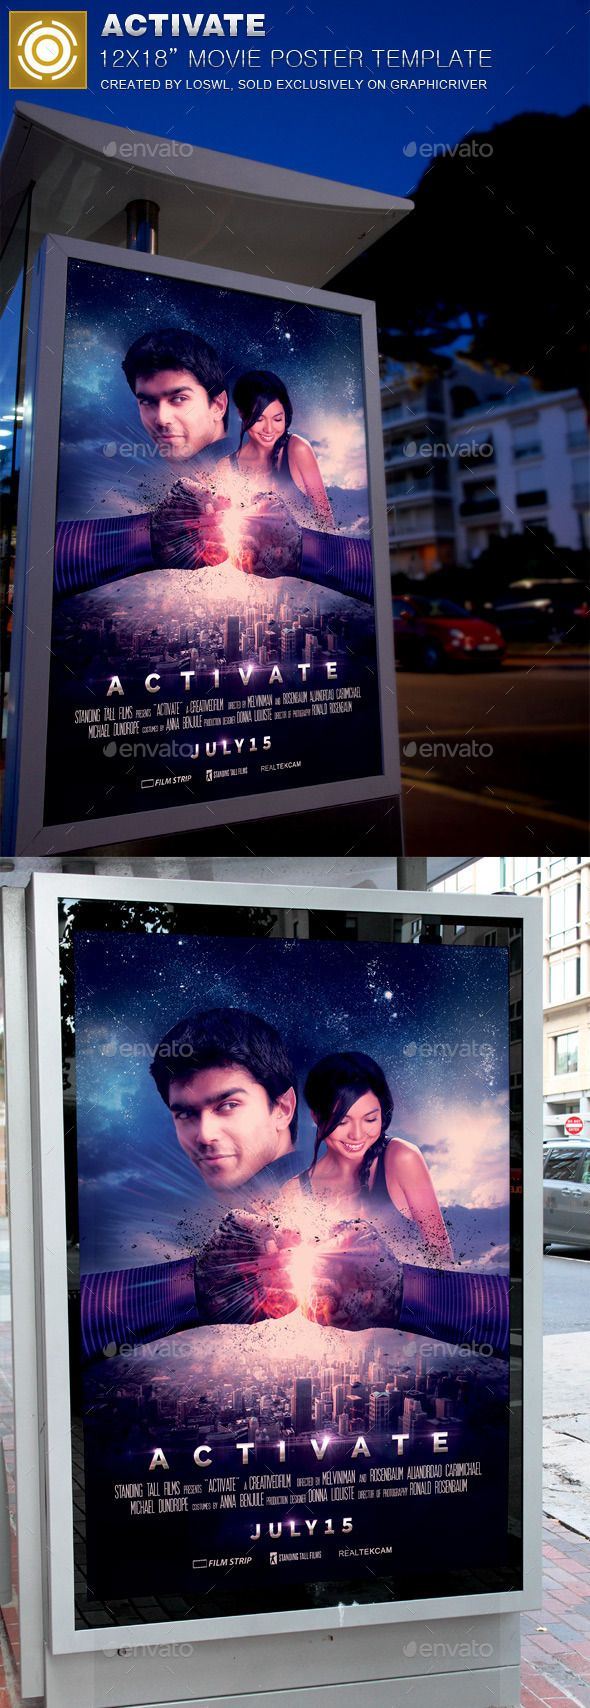 activate movie poster template movie poster template template and